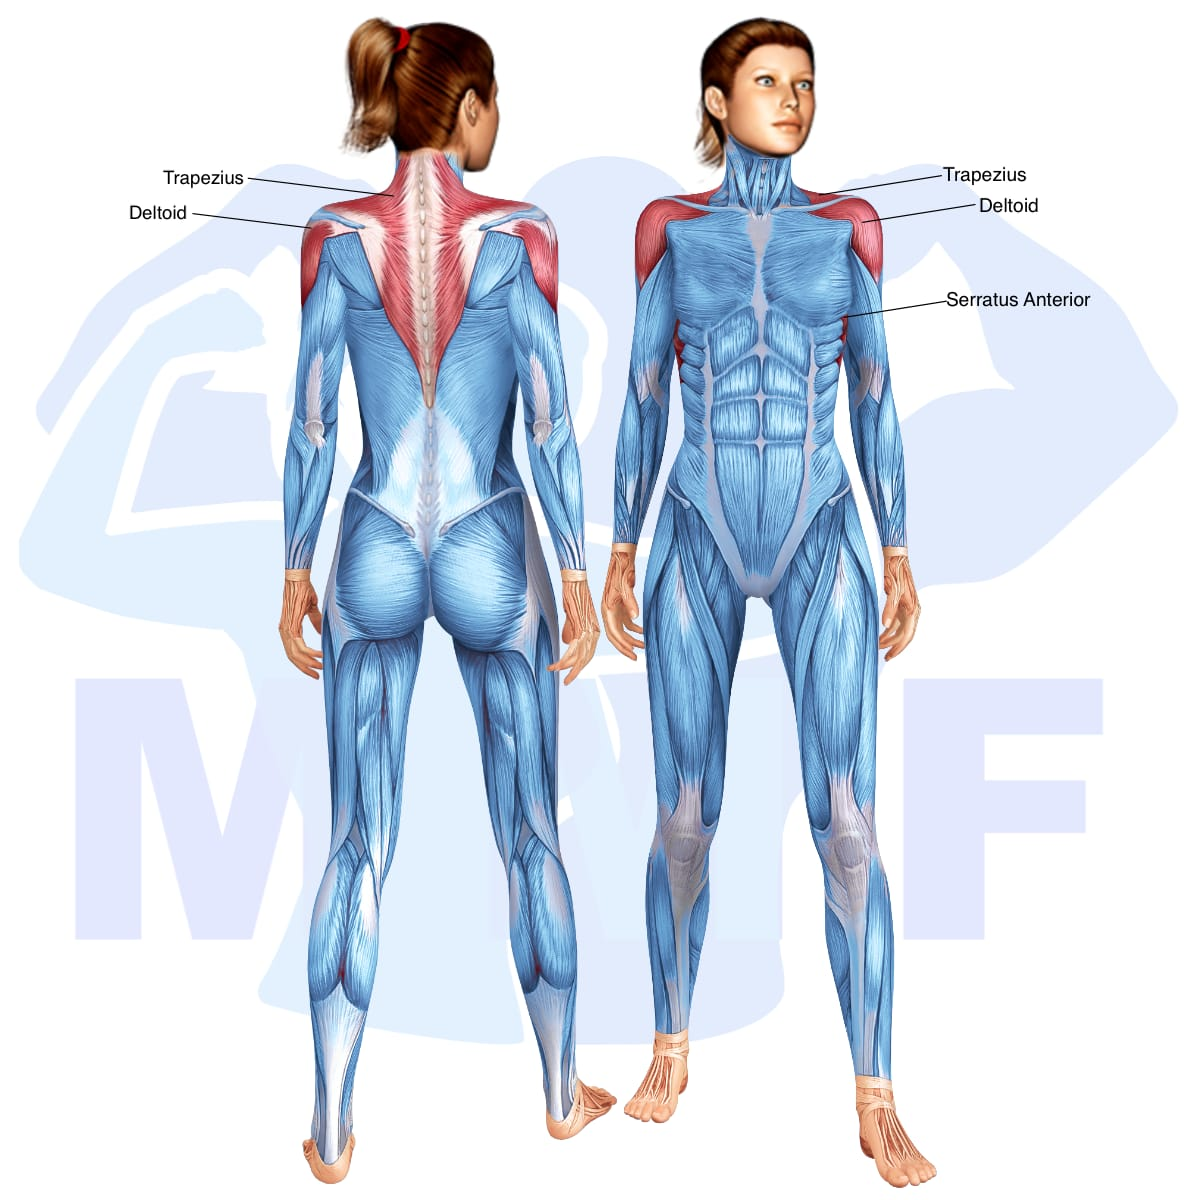 Skeletal muscle systems for a muscular woman, with muscles highlighted in red that are use during resistance band forward raises.